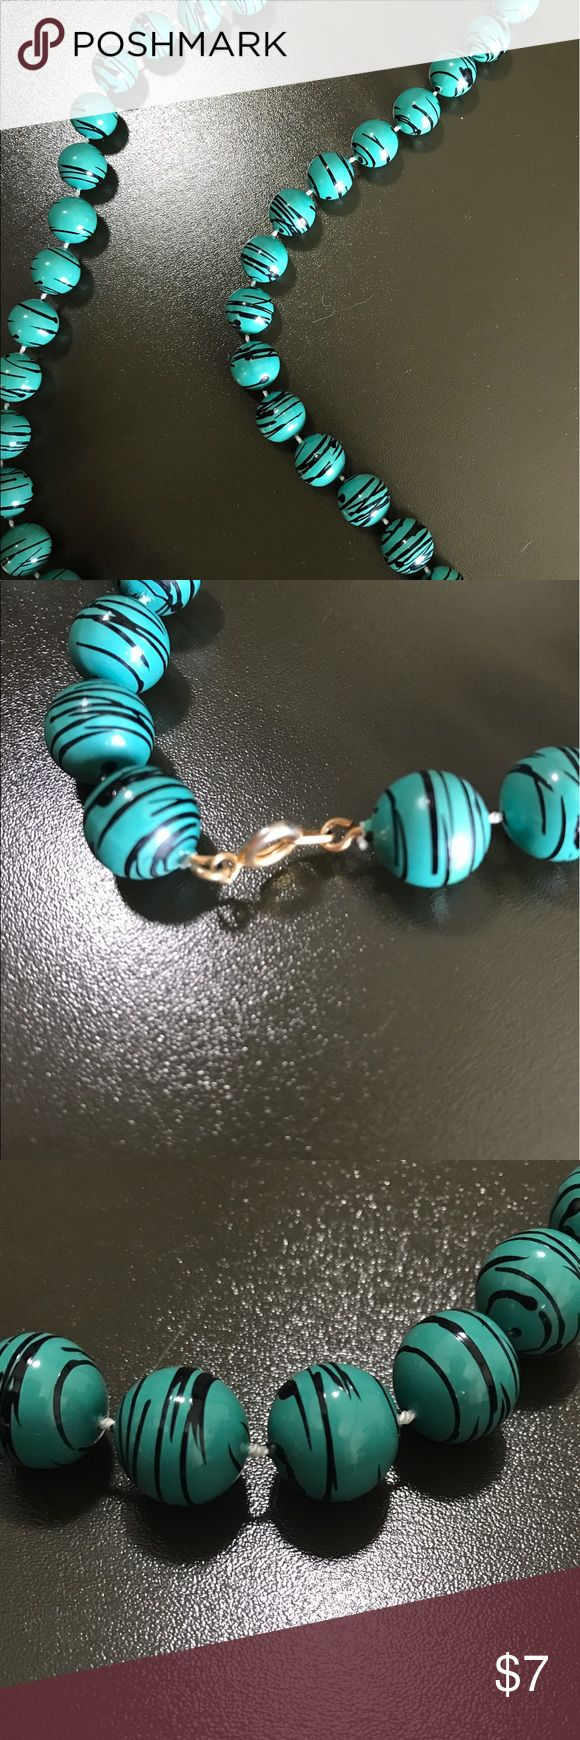 LIKE NEW black and teal necklace Worn once or twice! Black and teal medium length necklace Jewelry Necklaces